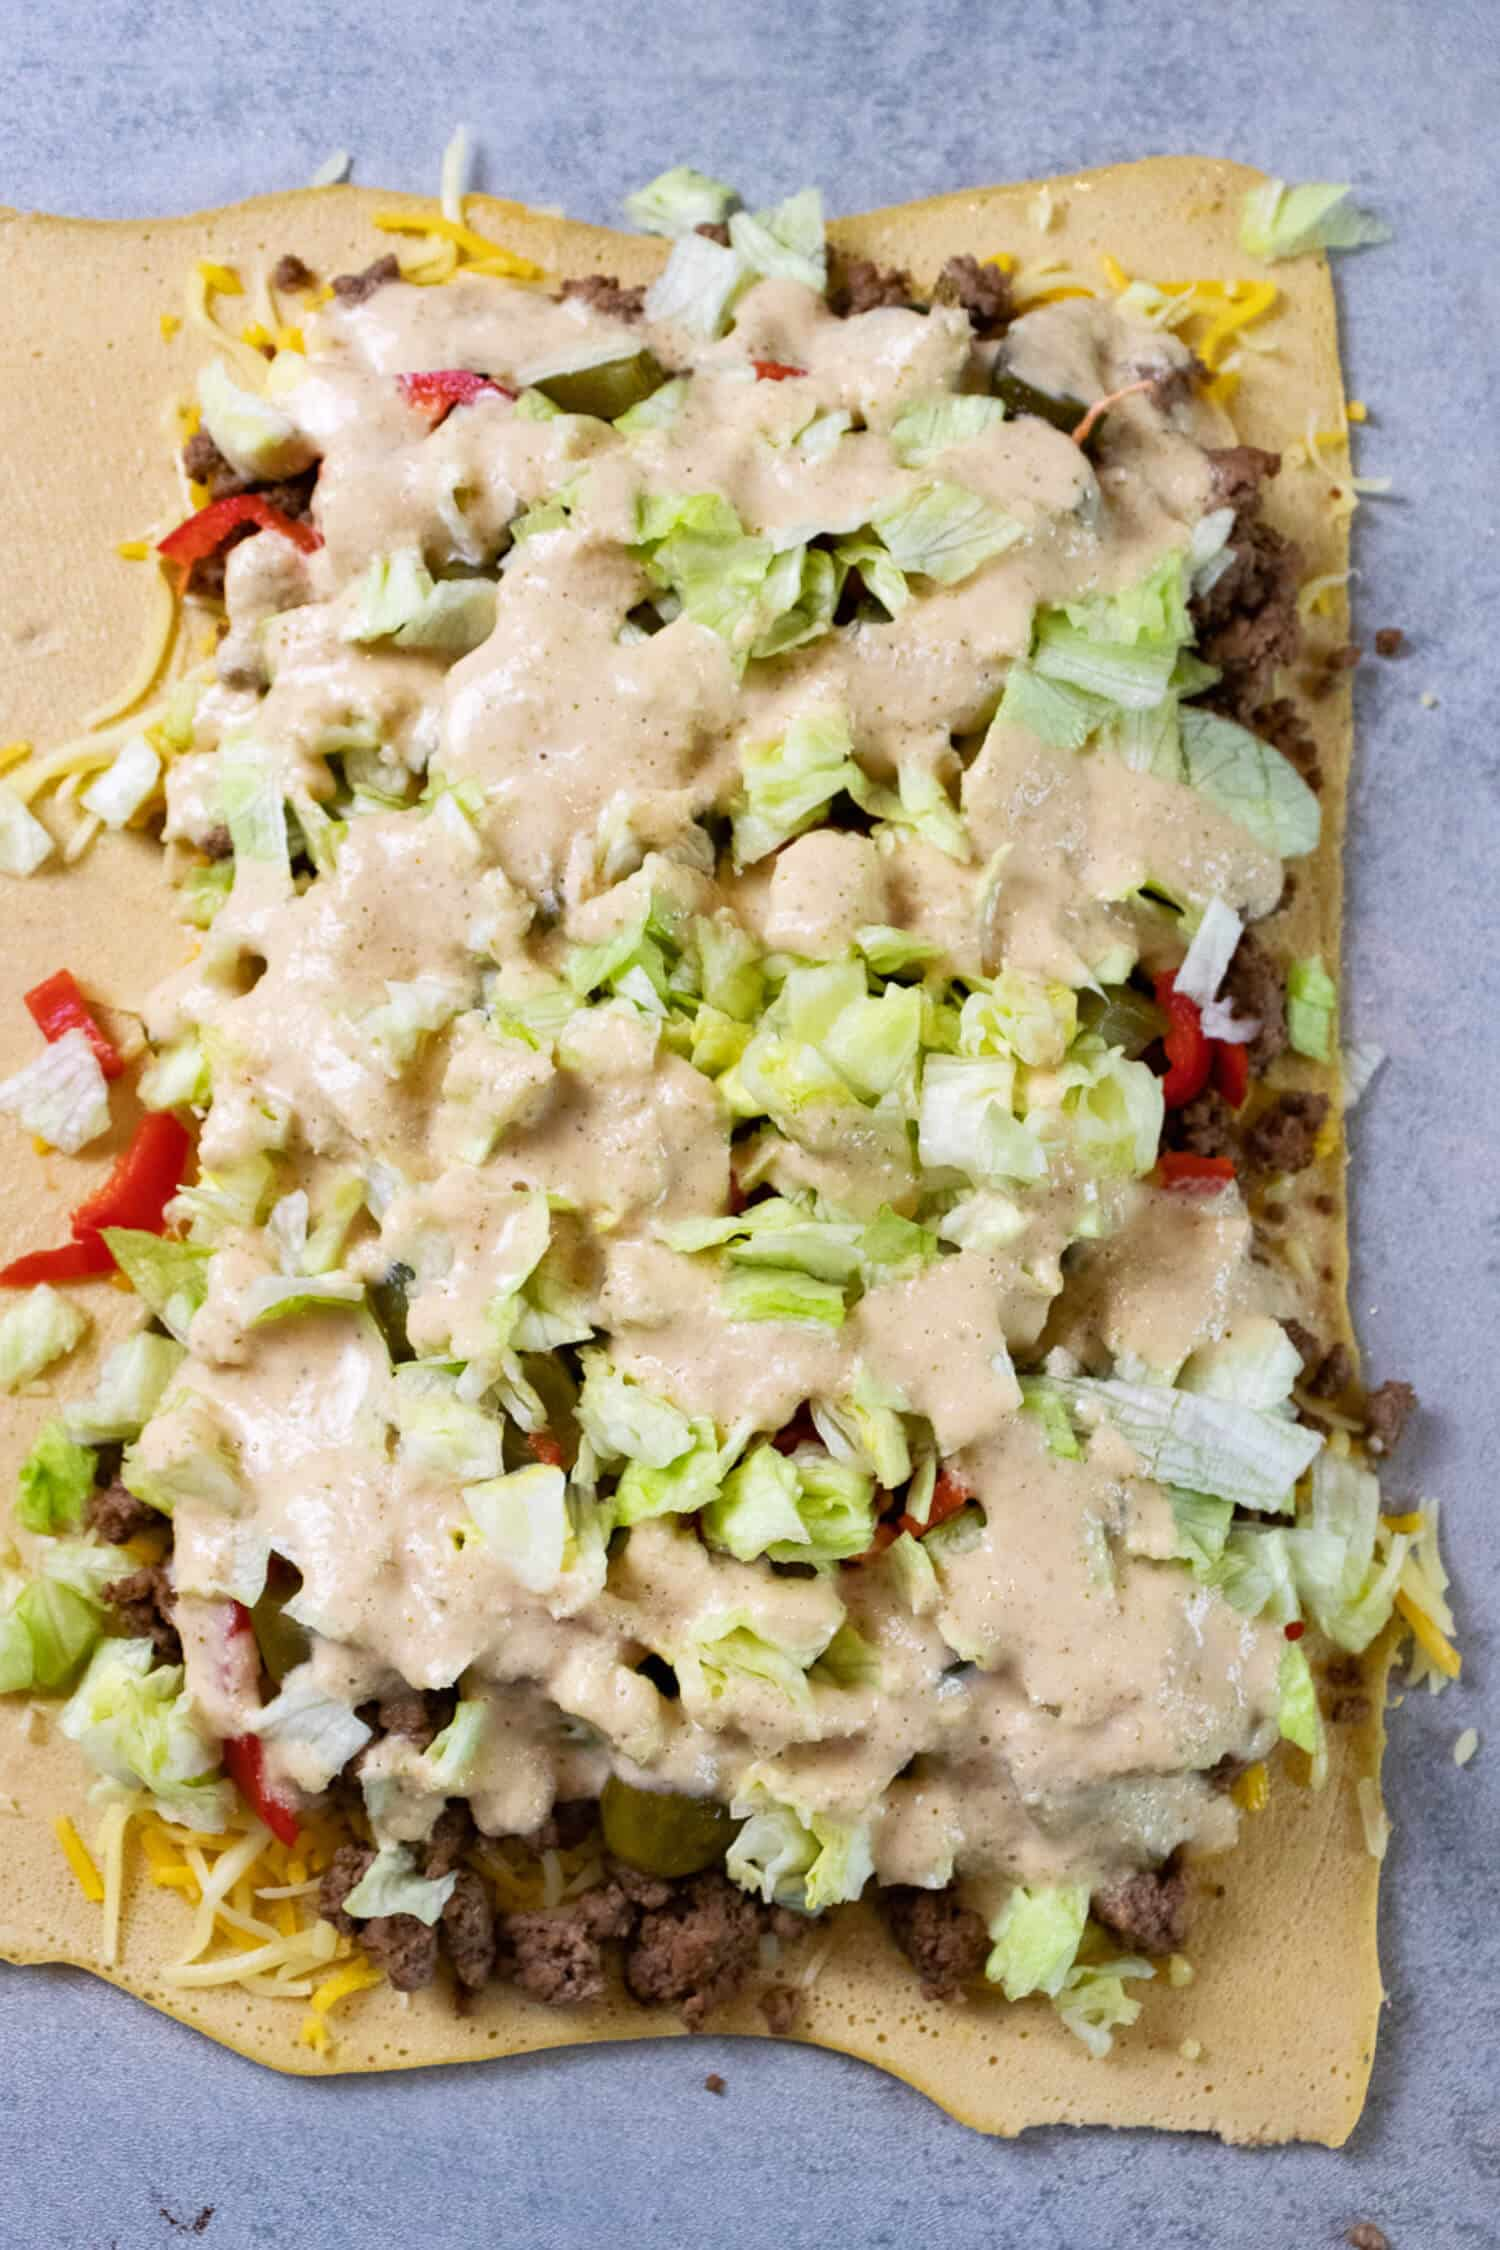 Low Carb Rezepte Big Mac Rolle ohne Kohlenhydrate